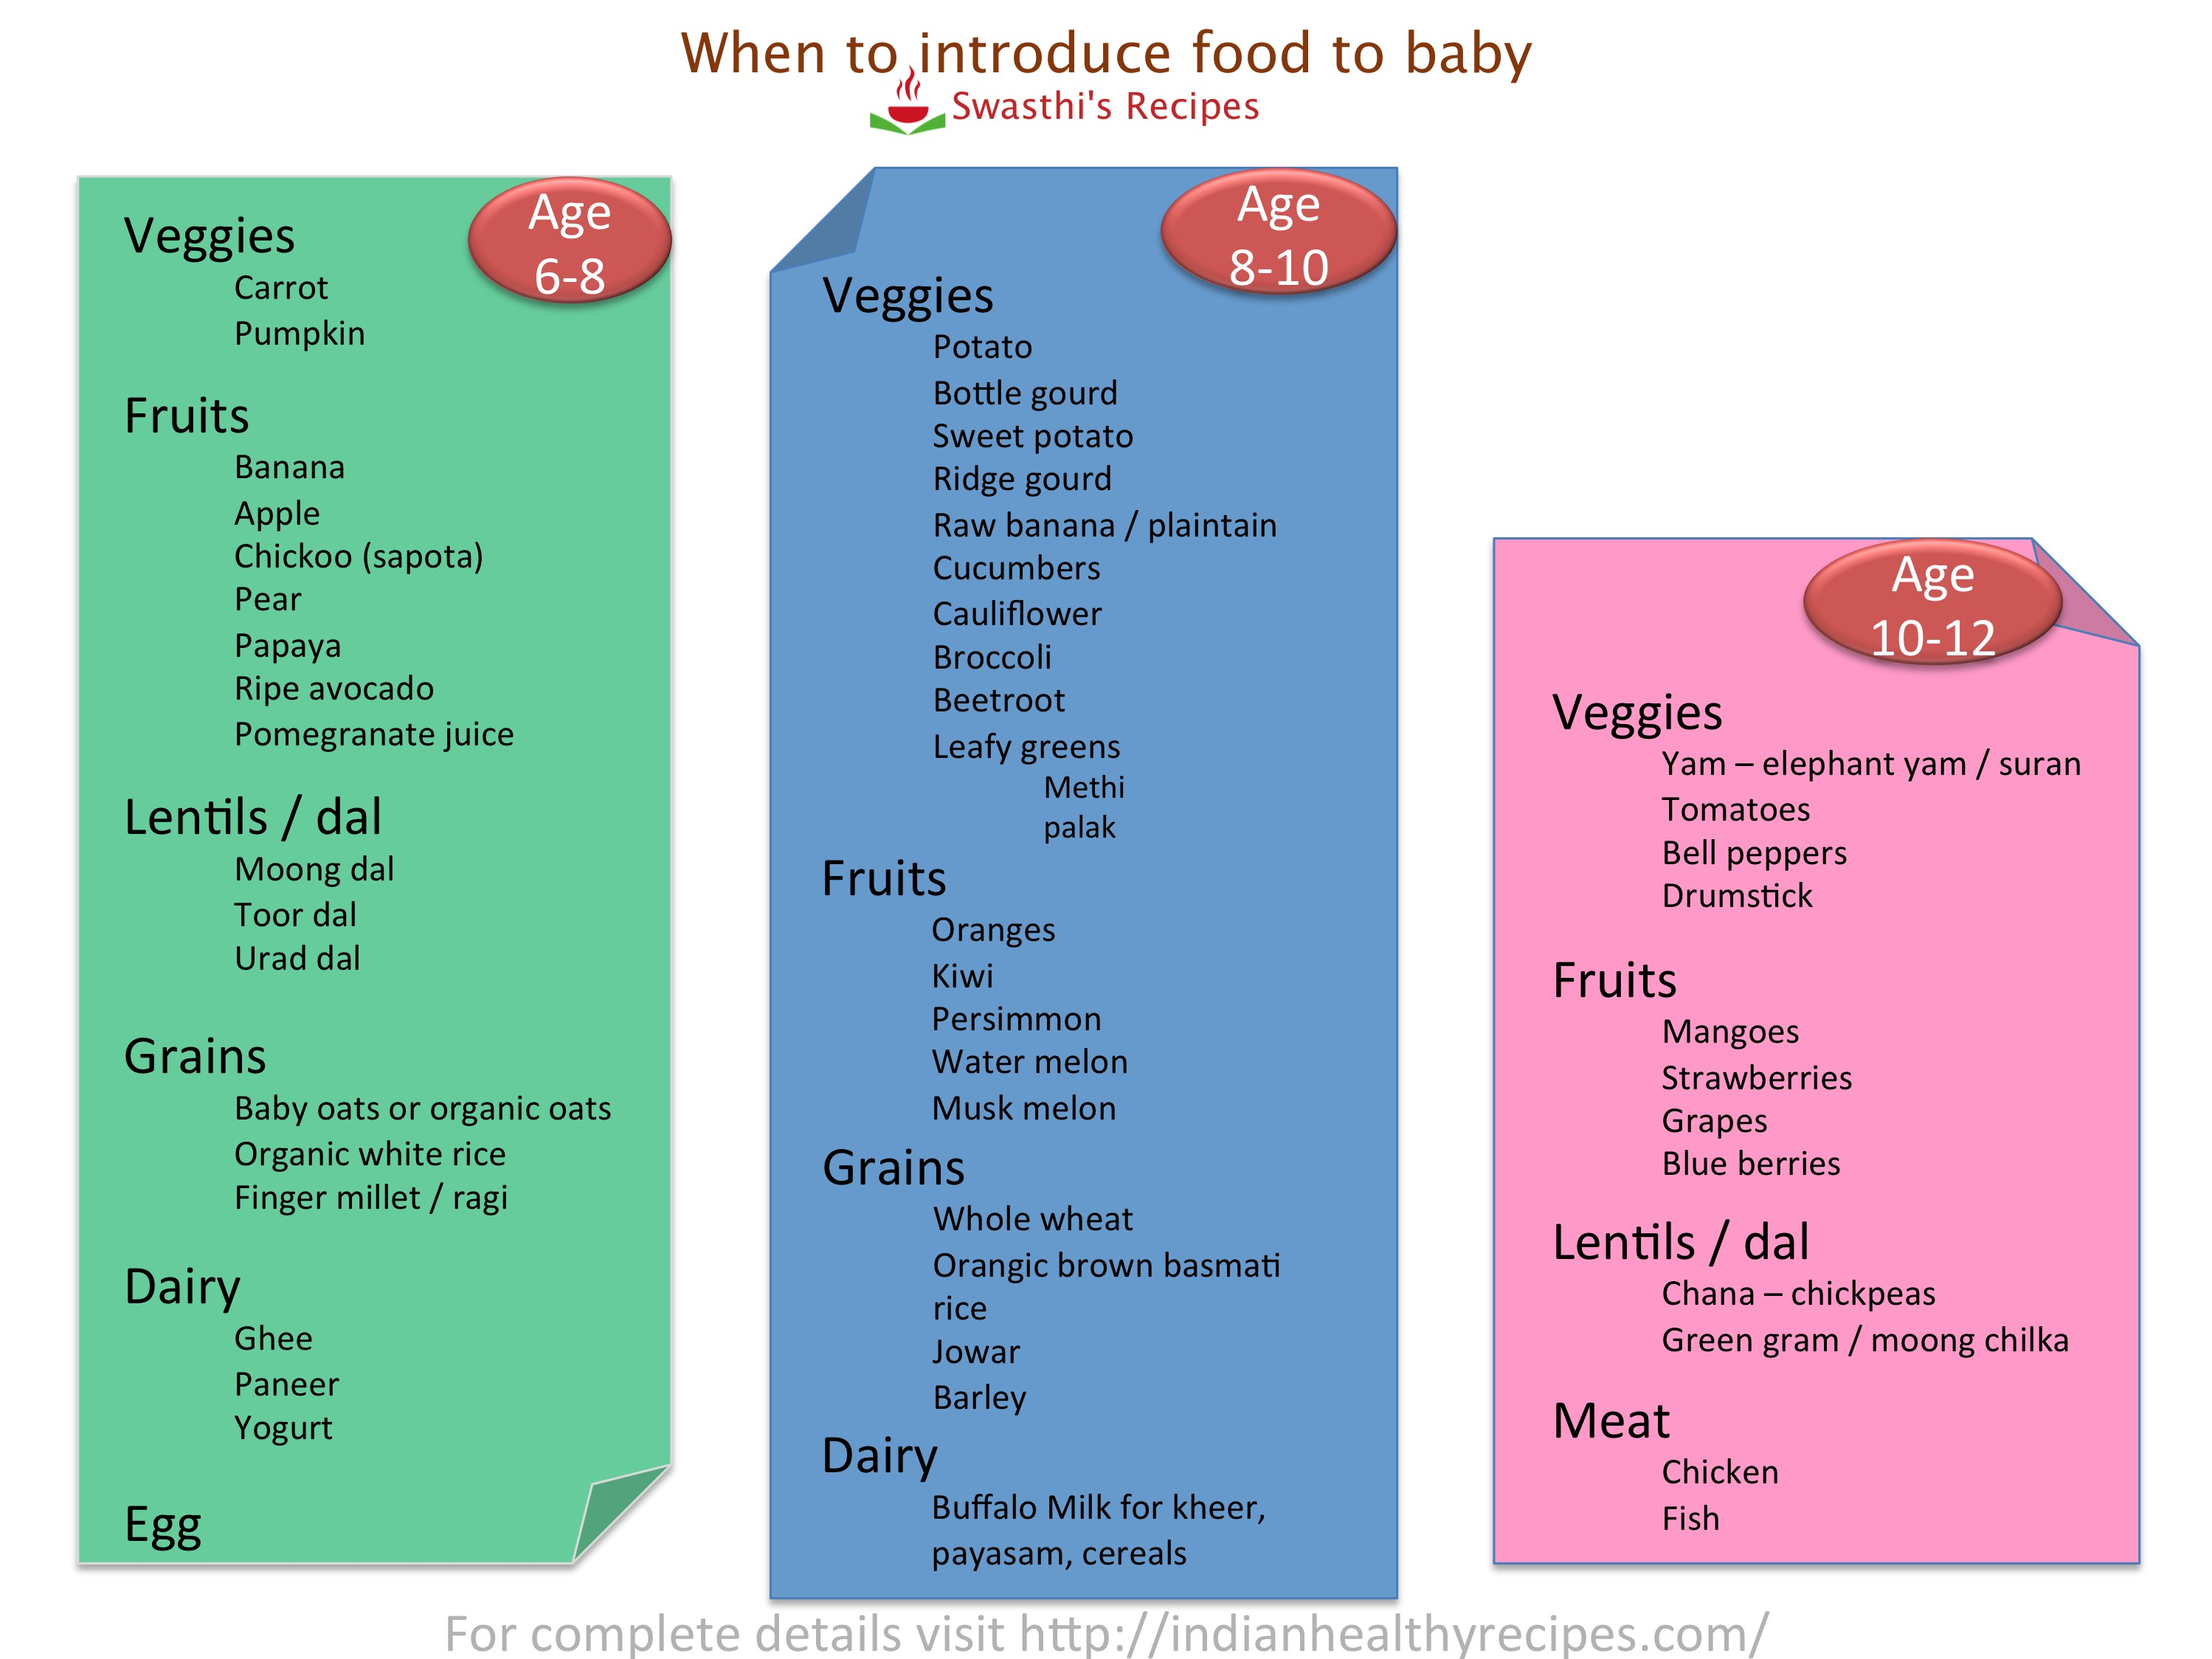 Baby Food Chart 2019 Printable Calendar Posters Images